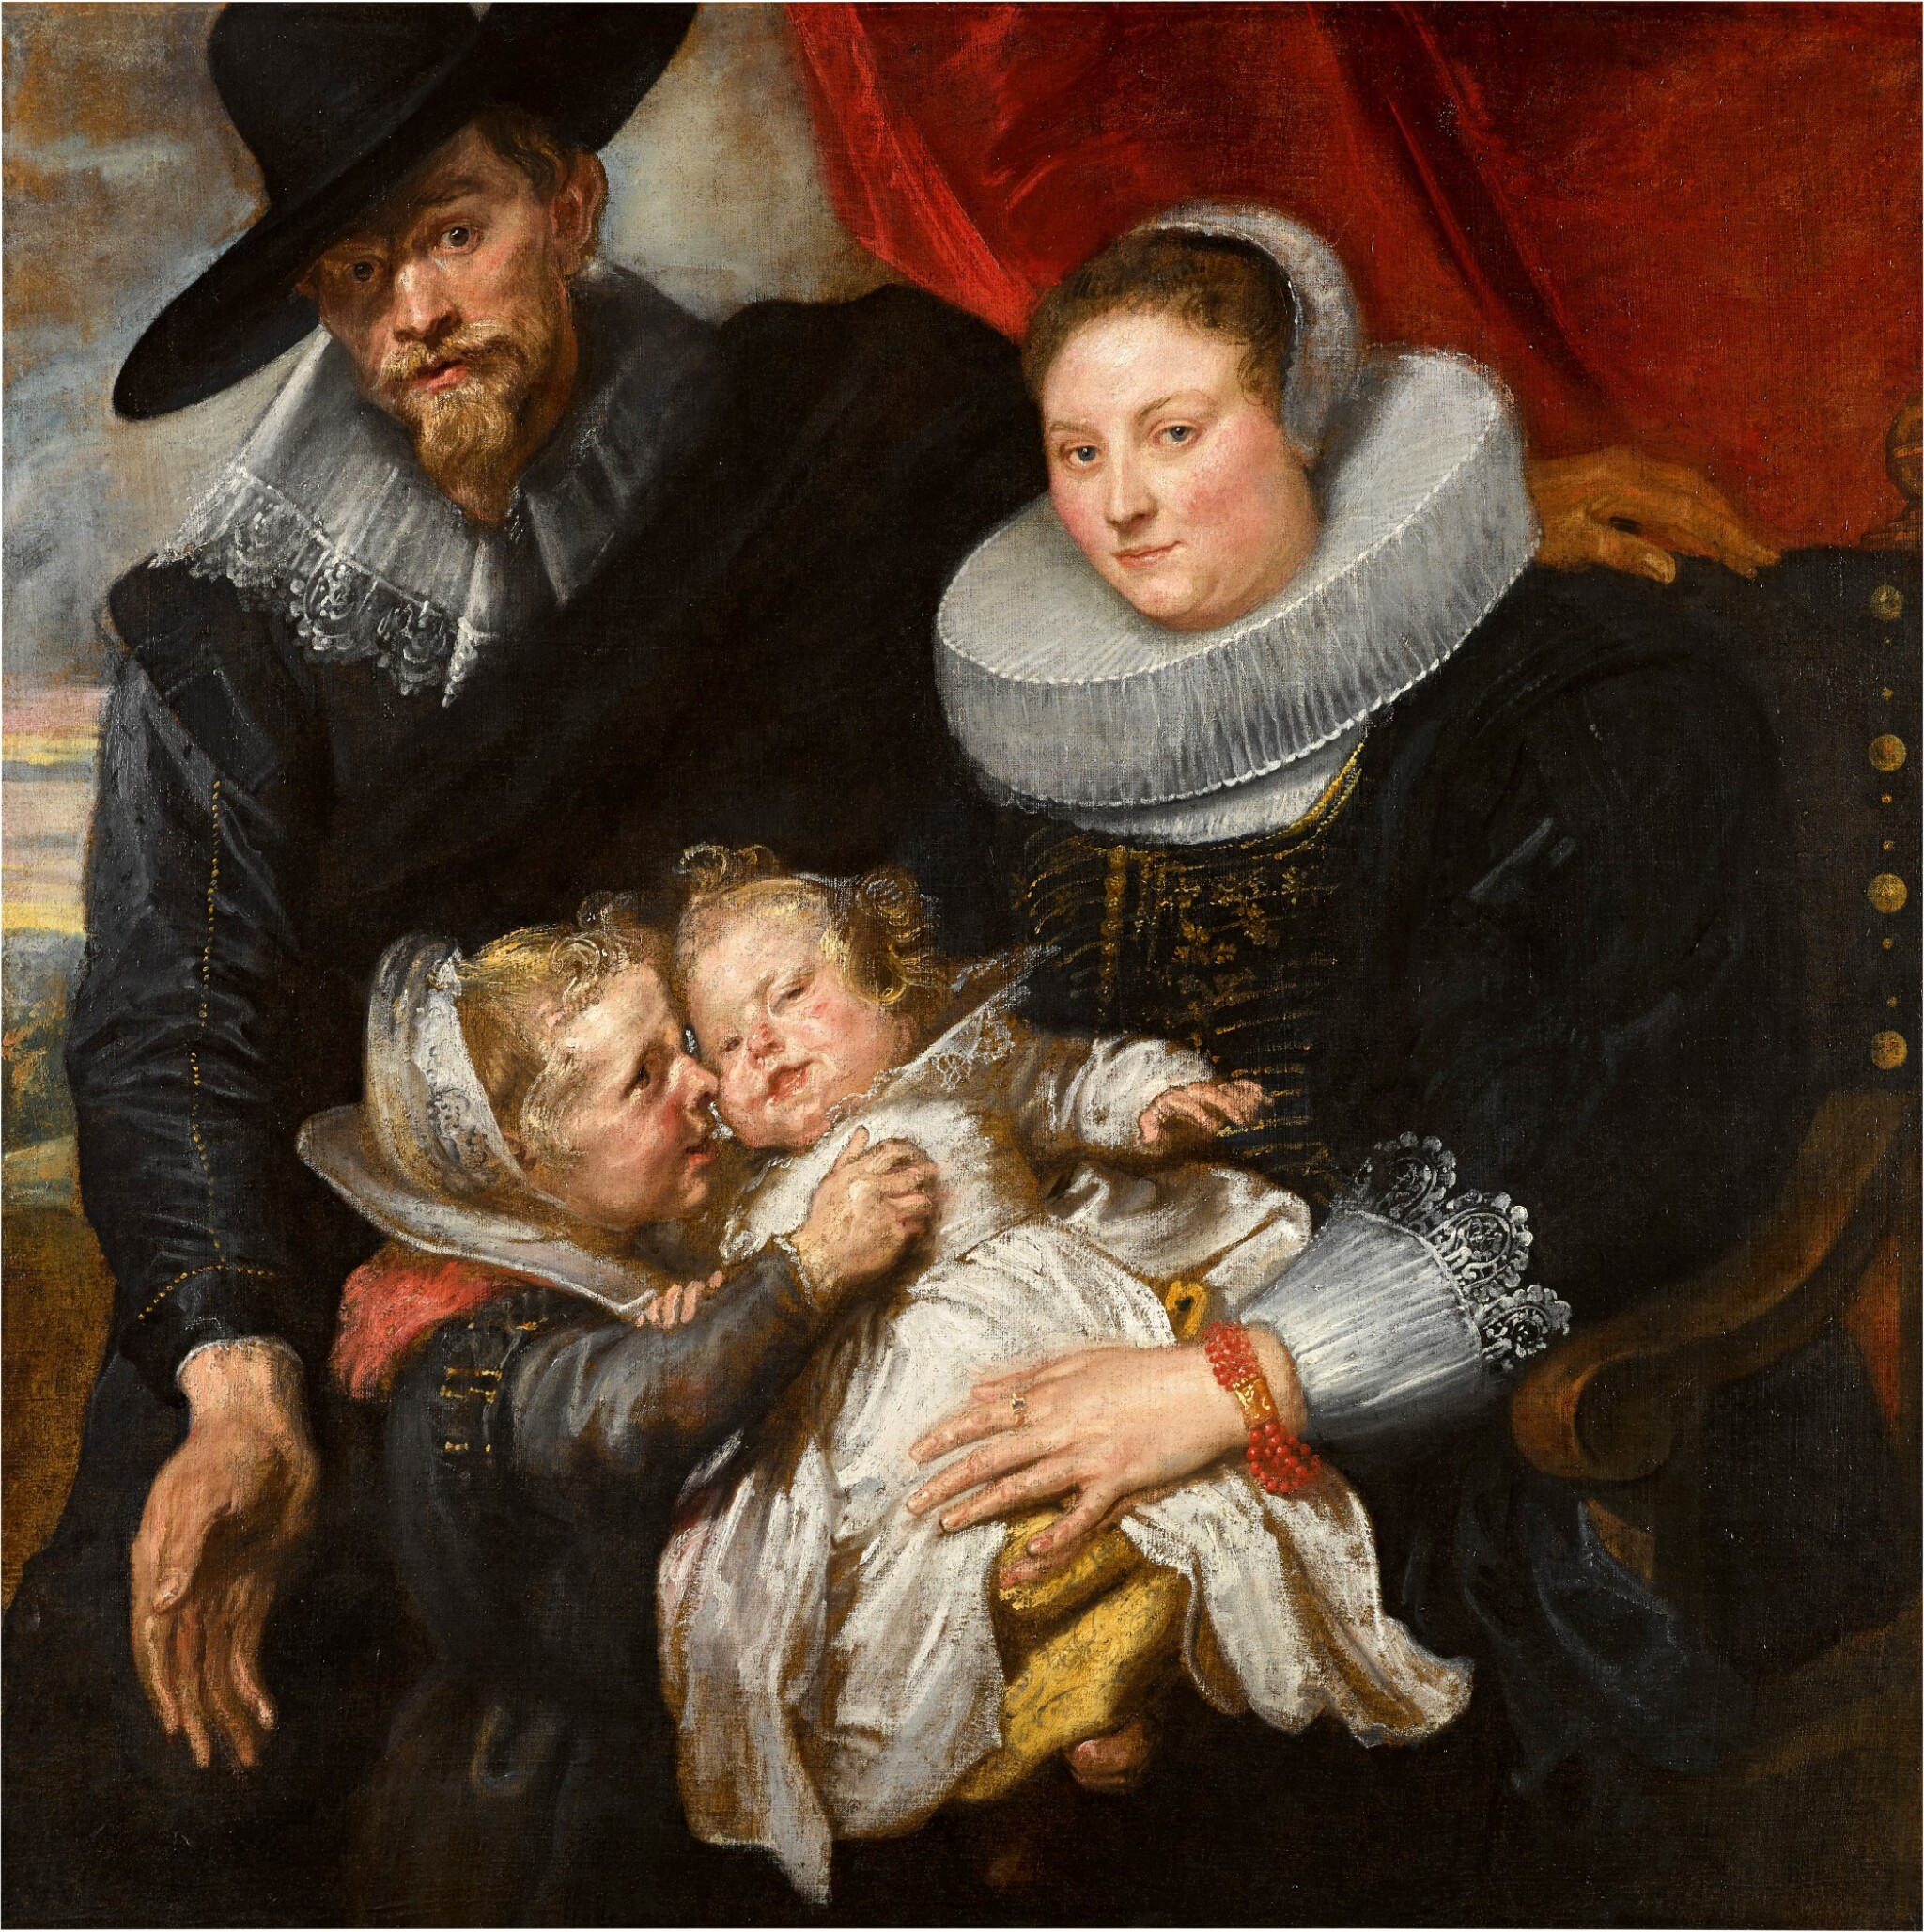 View full screen - View 1 of Lot 14. Family portrait of the painter Cornelis de Vos and his wife Suzanna Cock and their two eldest children, Magdalena and Jan-Baptist   《畫家科尼利厄斯・德・沃斯、其妻蘇珊娜・考克與長子女馬格達萊納和揚・巴普蒂斯的全家福》.